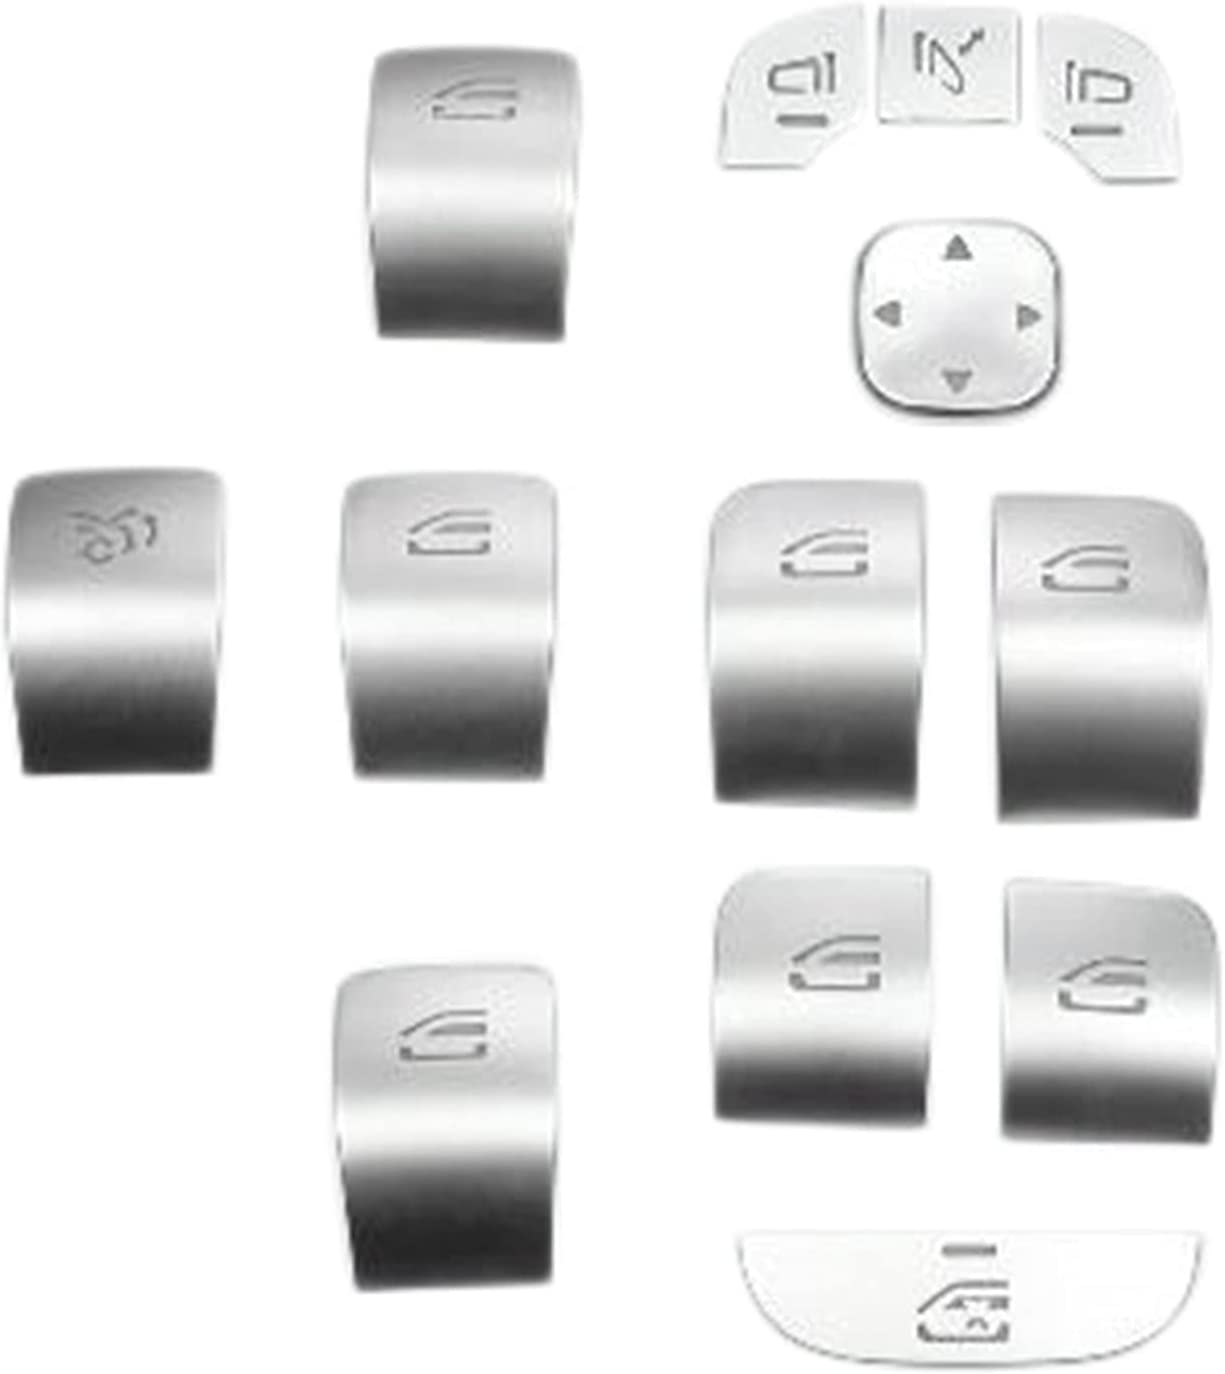 Vernacular Car Door Free shipping anywhere in the nation Armrest Window Fit f Stickers Excellent Switch Buttons